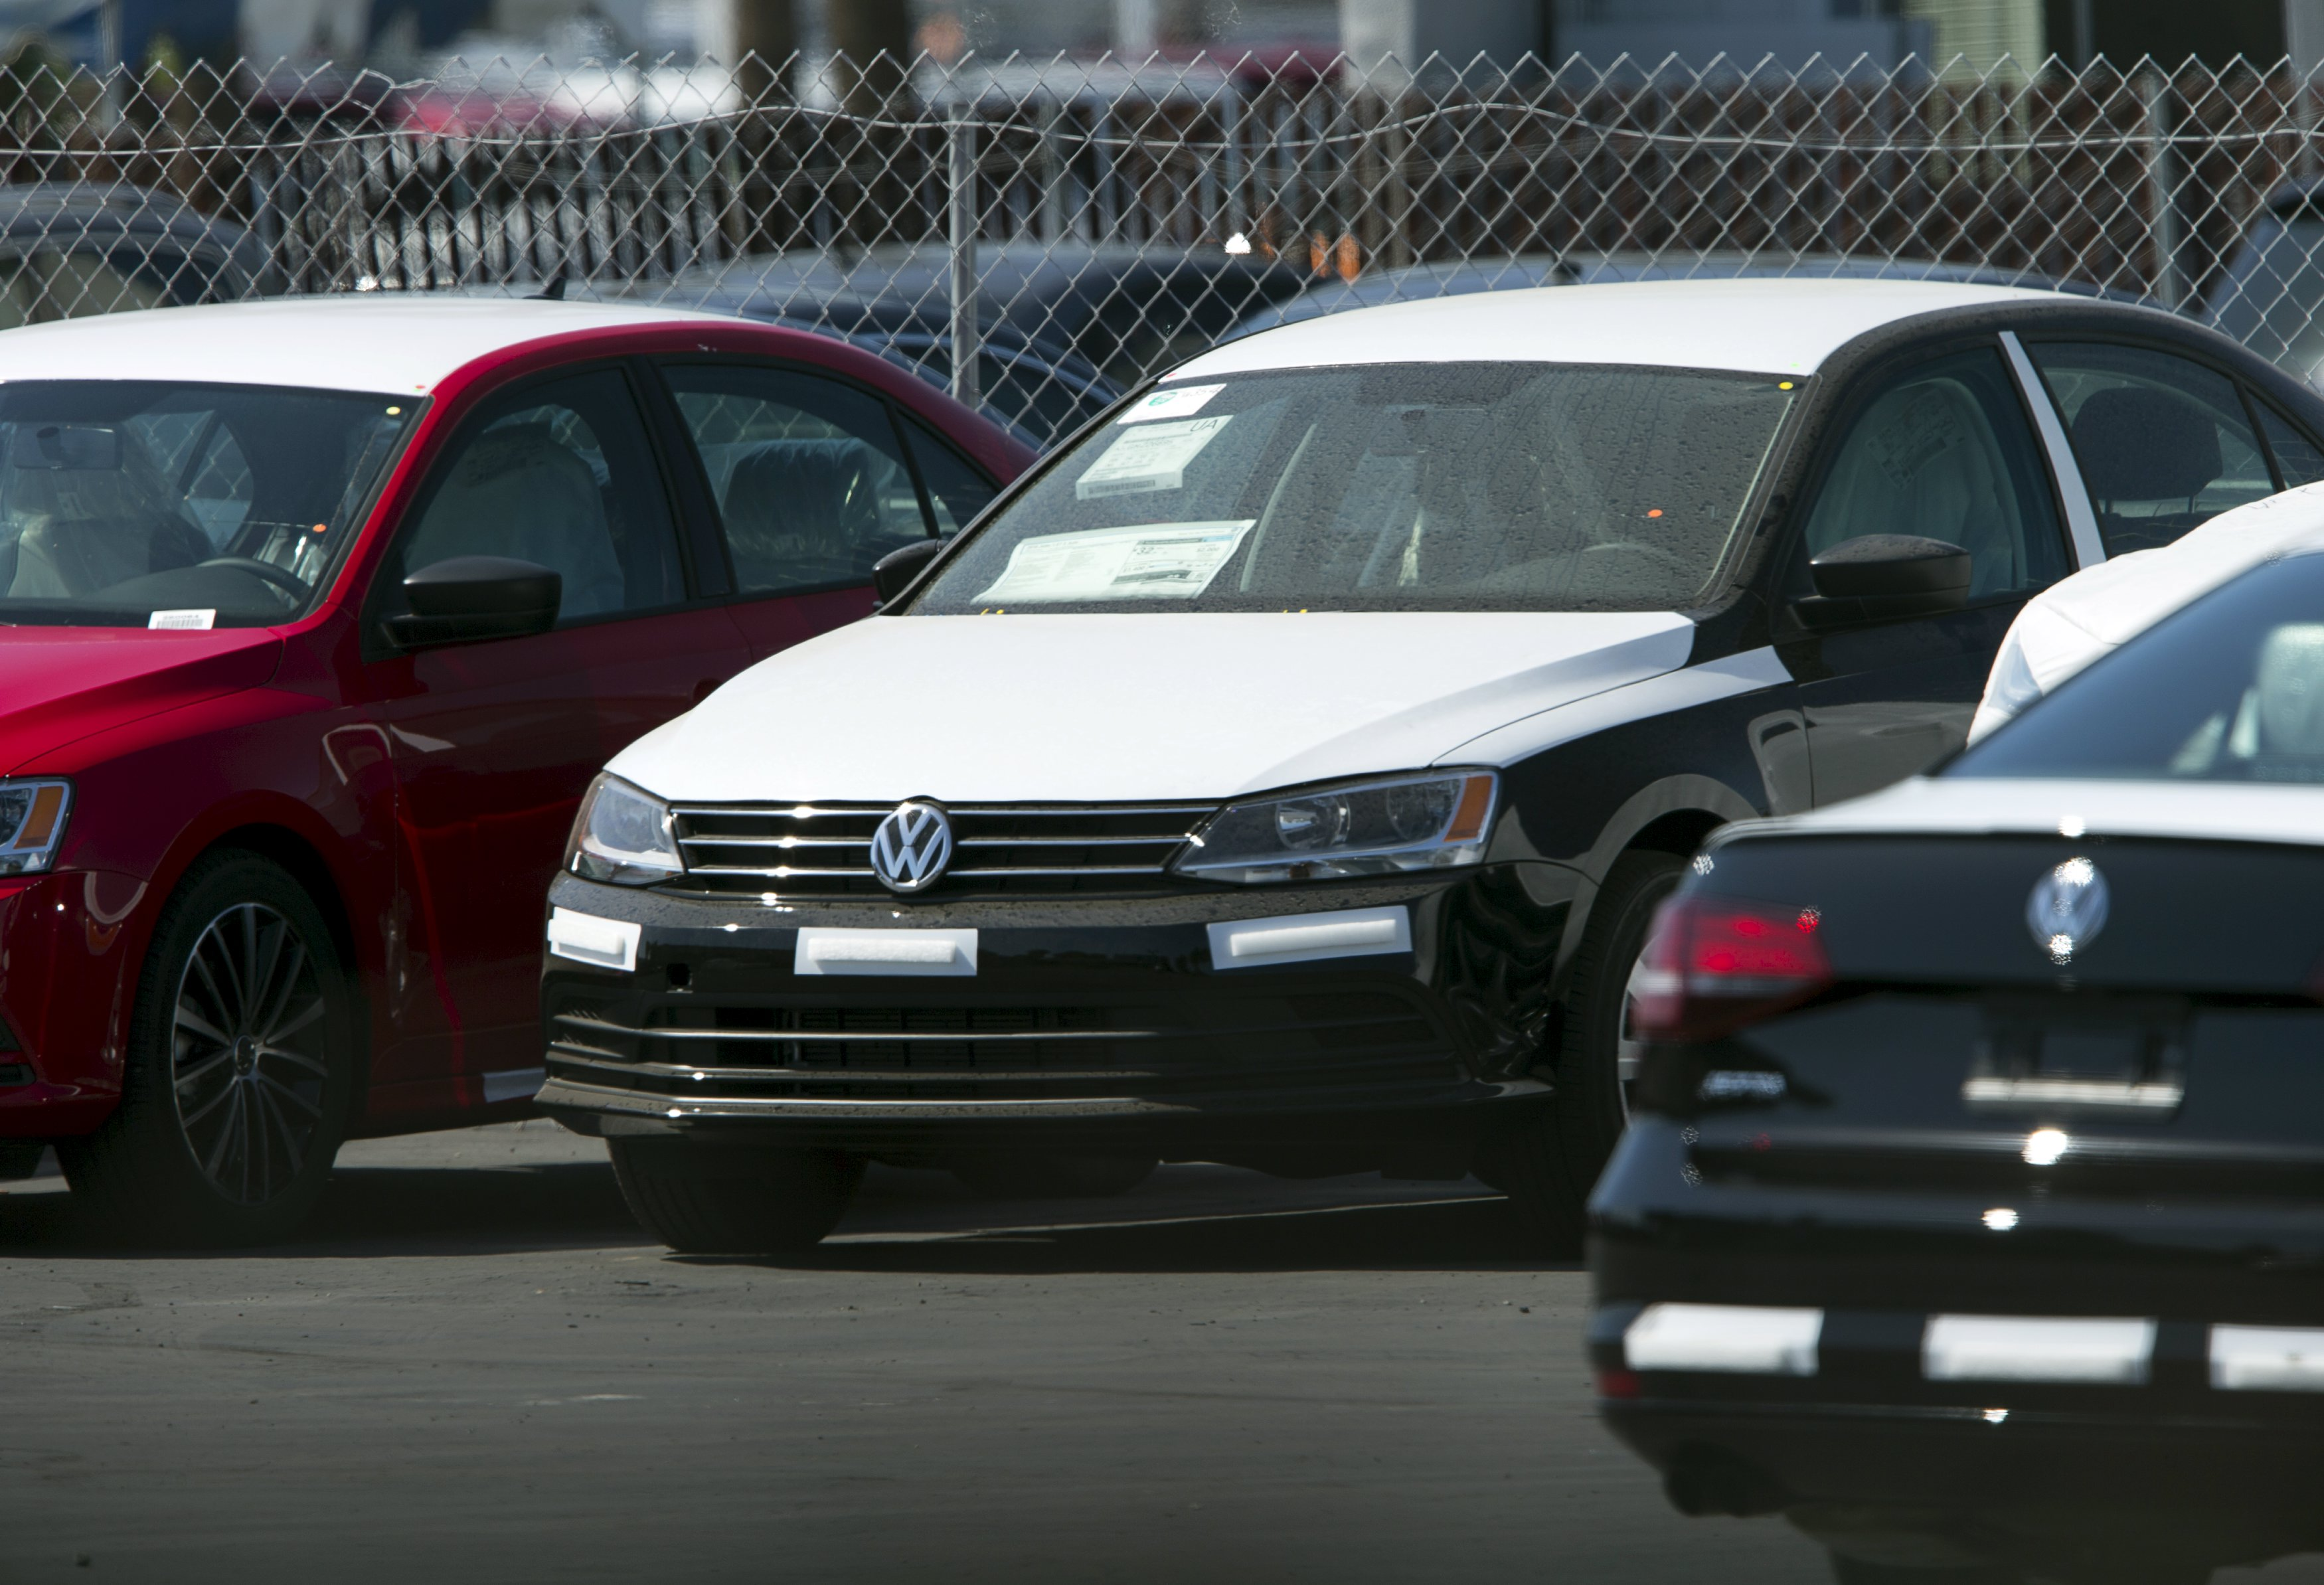 Newly shipped Volkswagen vehicles sit on a back lot at a Volkswagen dealership in San Diego, California September 23, 2015. Volkswagen Chief Executive Martin Winterkorn resigned on Wednesday, succumbing to pressure for change at the German carmaker, which is reeling from the admission that it deceived U.S. regulators about how much its diesel cars pollute.  REUTERS/Mike Blake